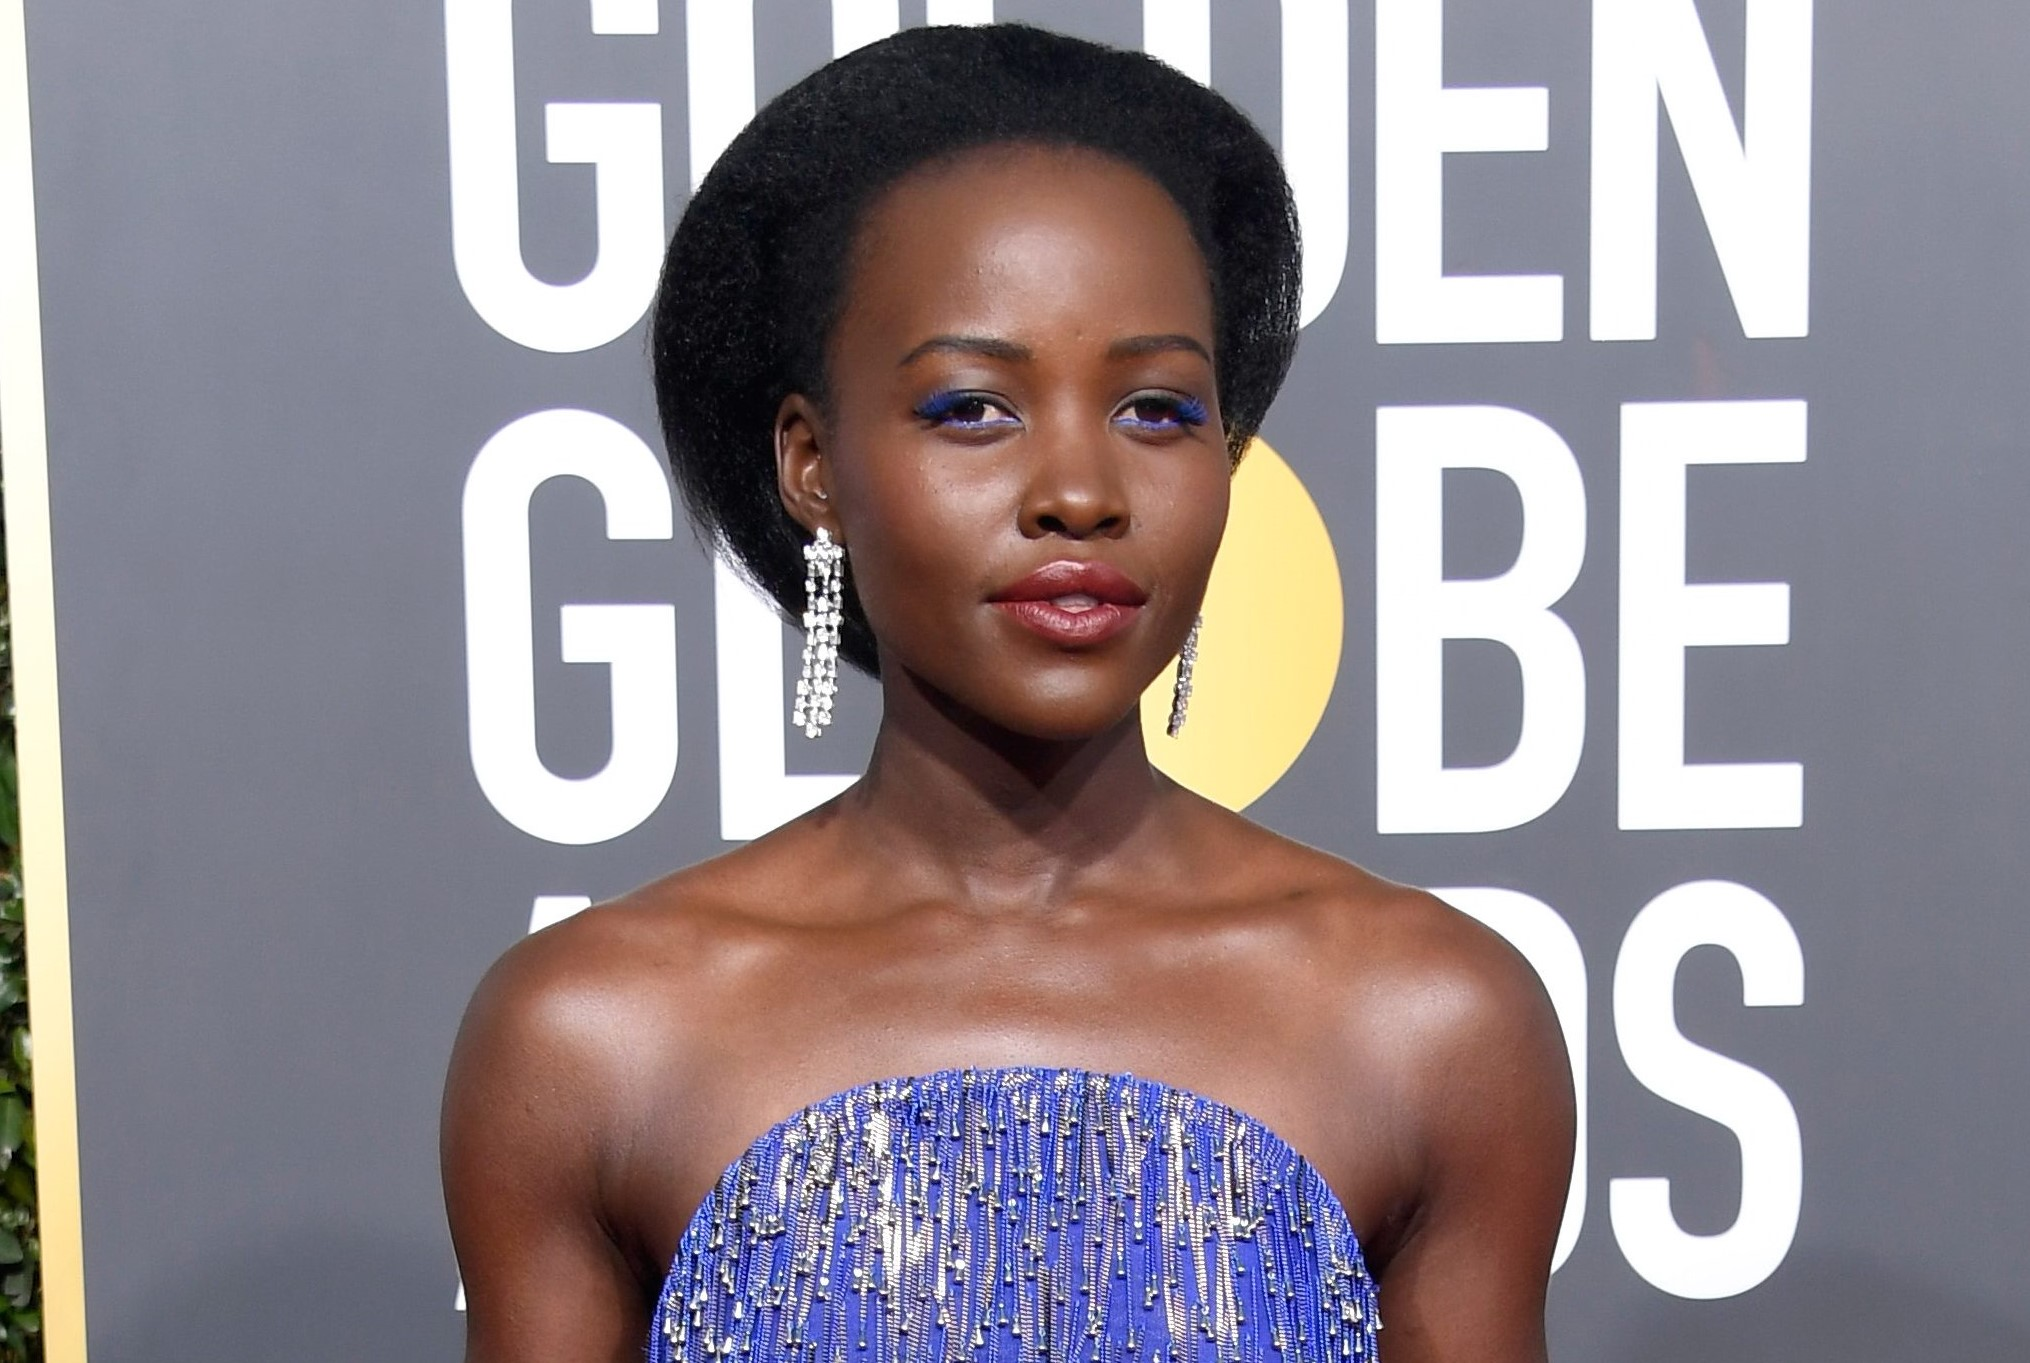 Lupita Nyong'o | 12 Most Beautiful Black Actresses in Hollywood | Her Beauty